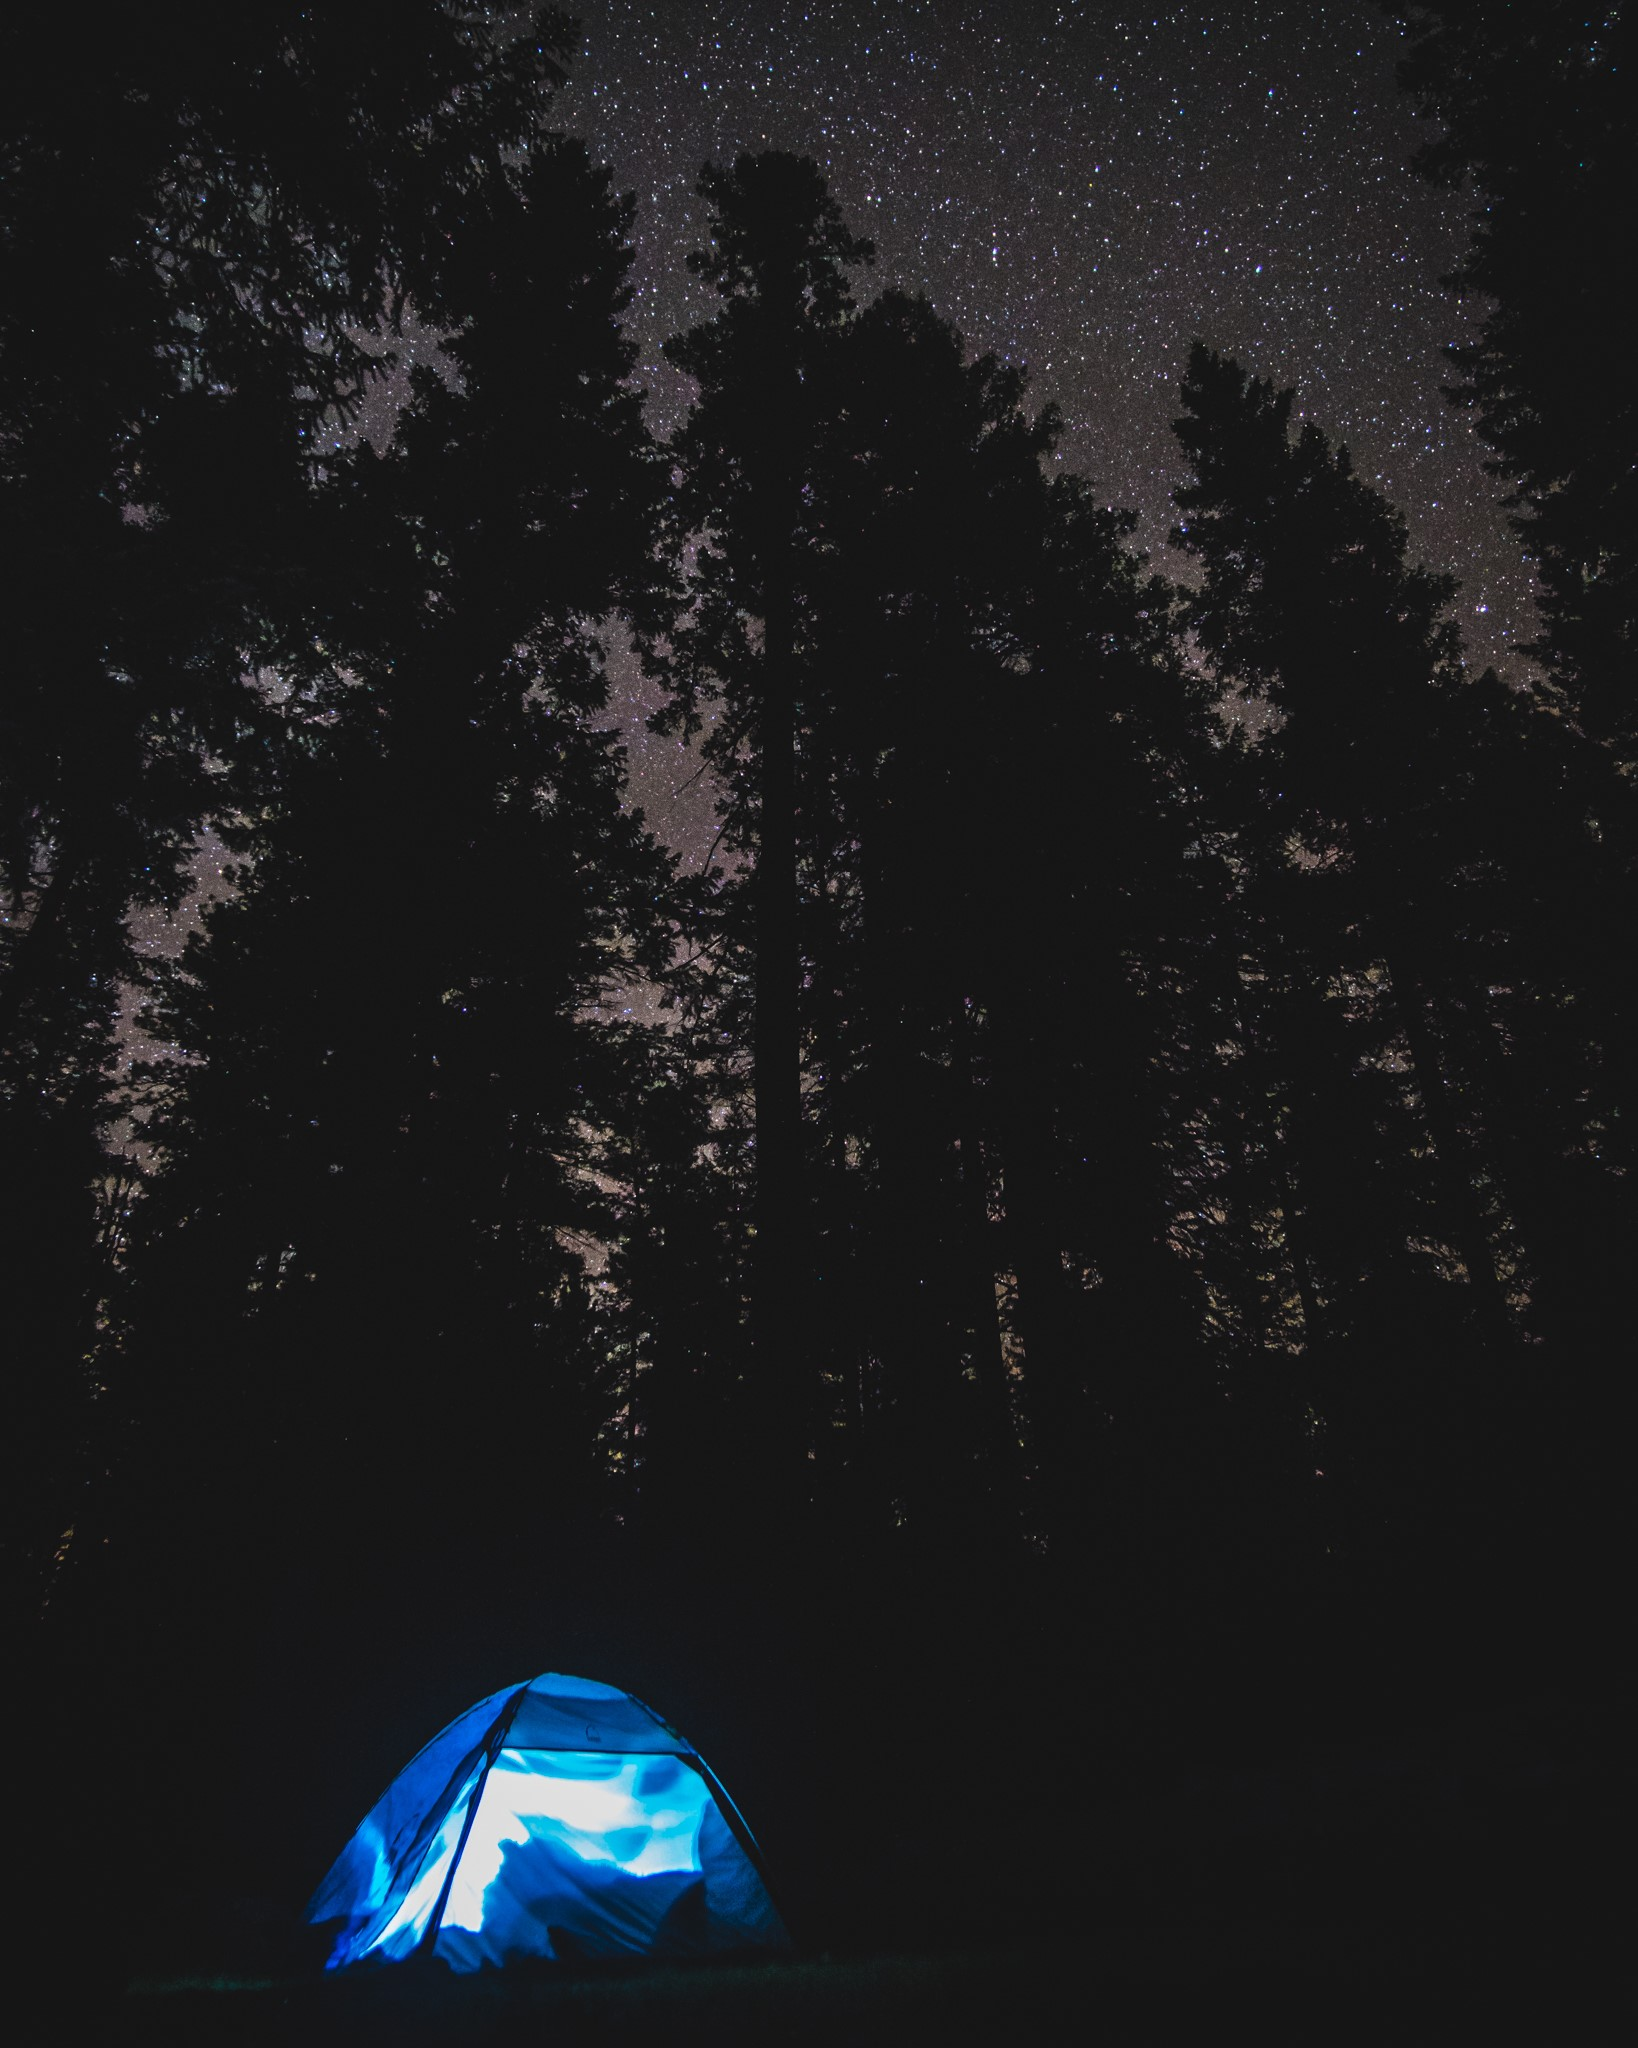 Nate Wyeth always takes the best camping pictures, especially at Wyeth Campground.